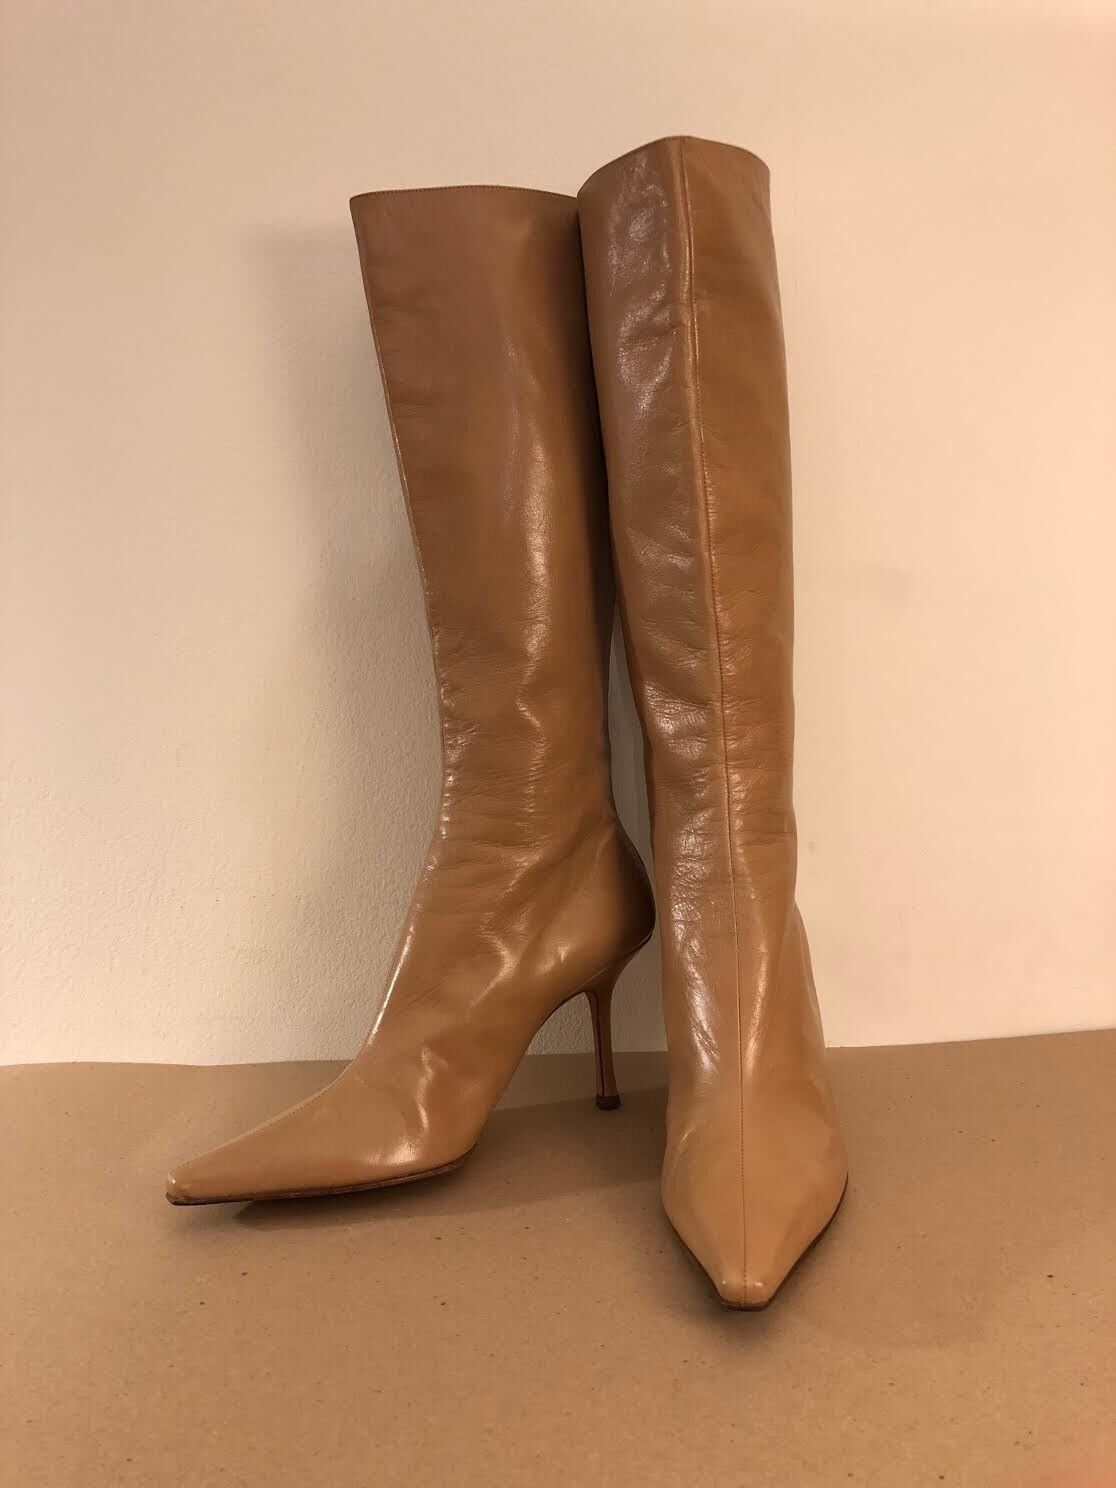 Jimmy Choo Beige/Taupe Leather Pointed Toe Knee High Boots Size 10us - 40.5euro.